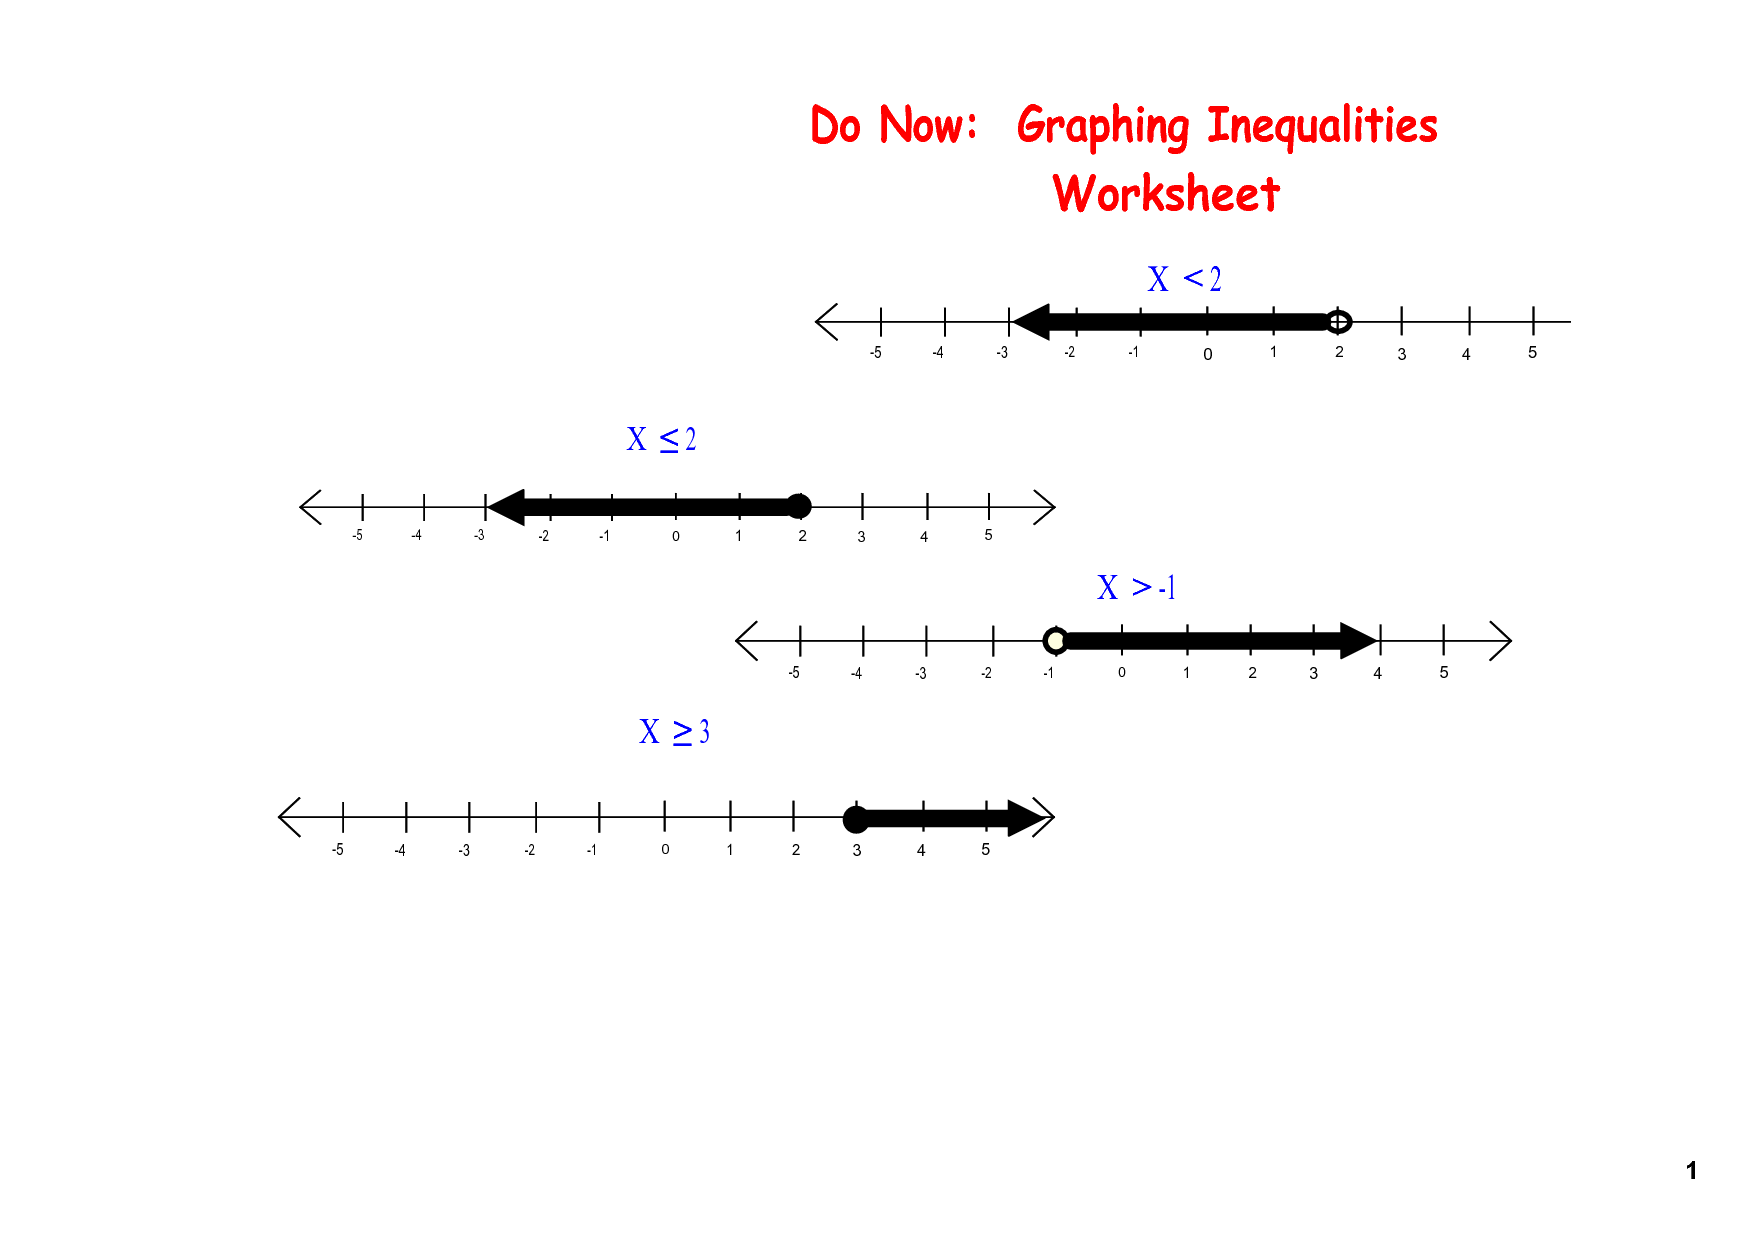 Graphing Inequalities Worksheet Mathworksheet4kids